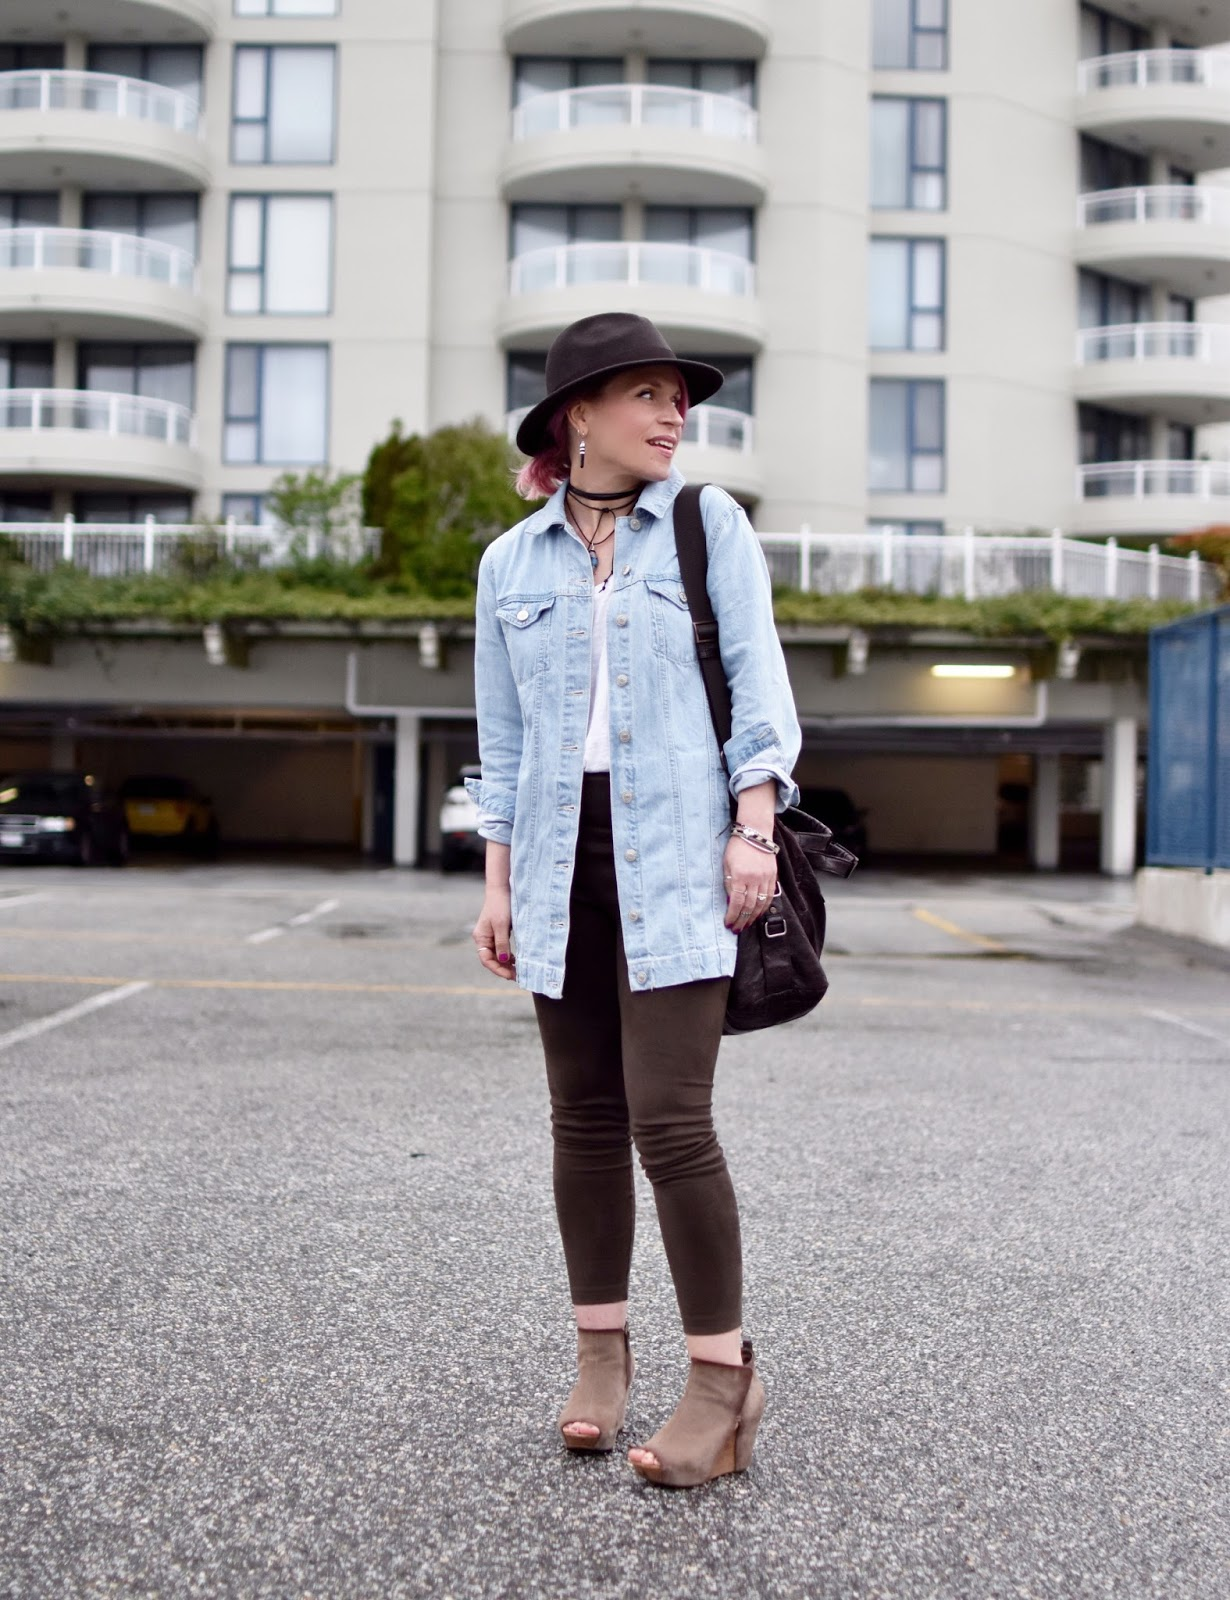 Monika Faulkner outfit inspiration - styling vegan suede leggings with an oversized denim jacket, open-toe wedge booties, and a felt fedora